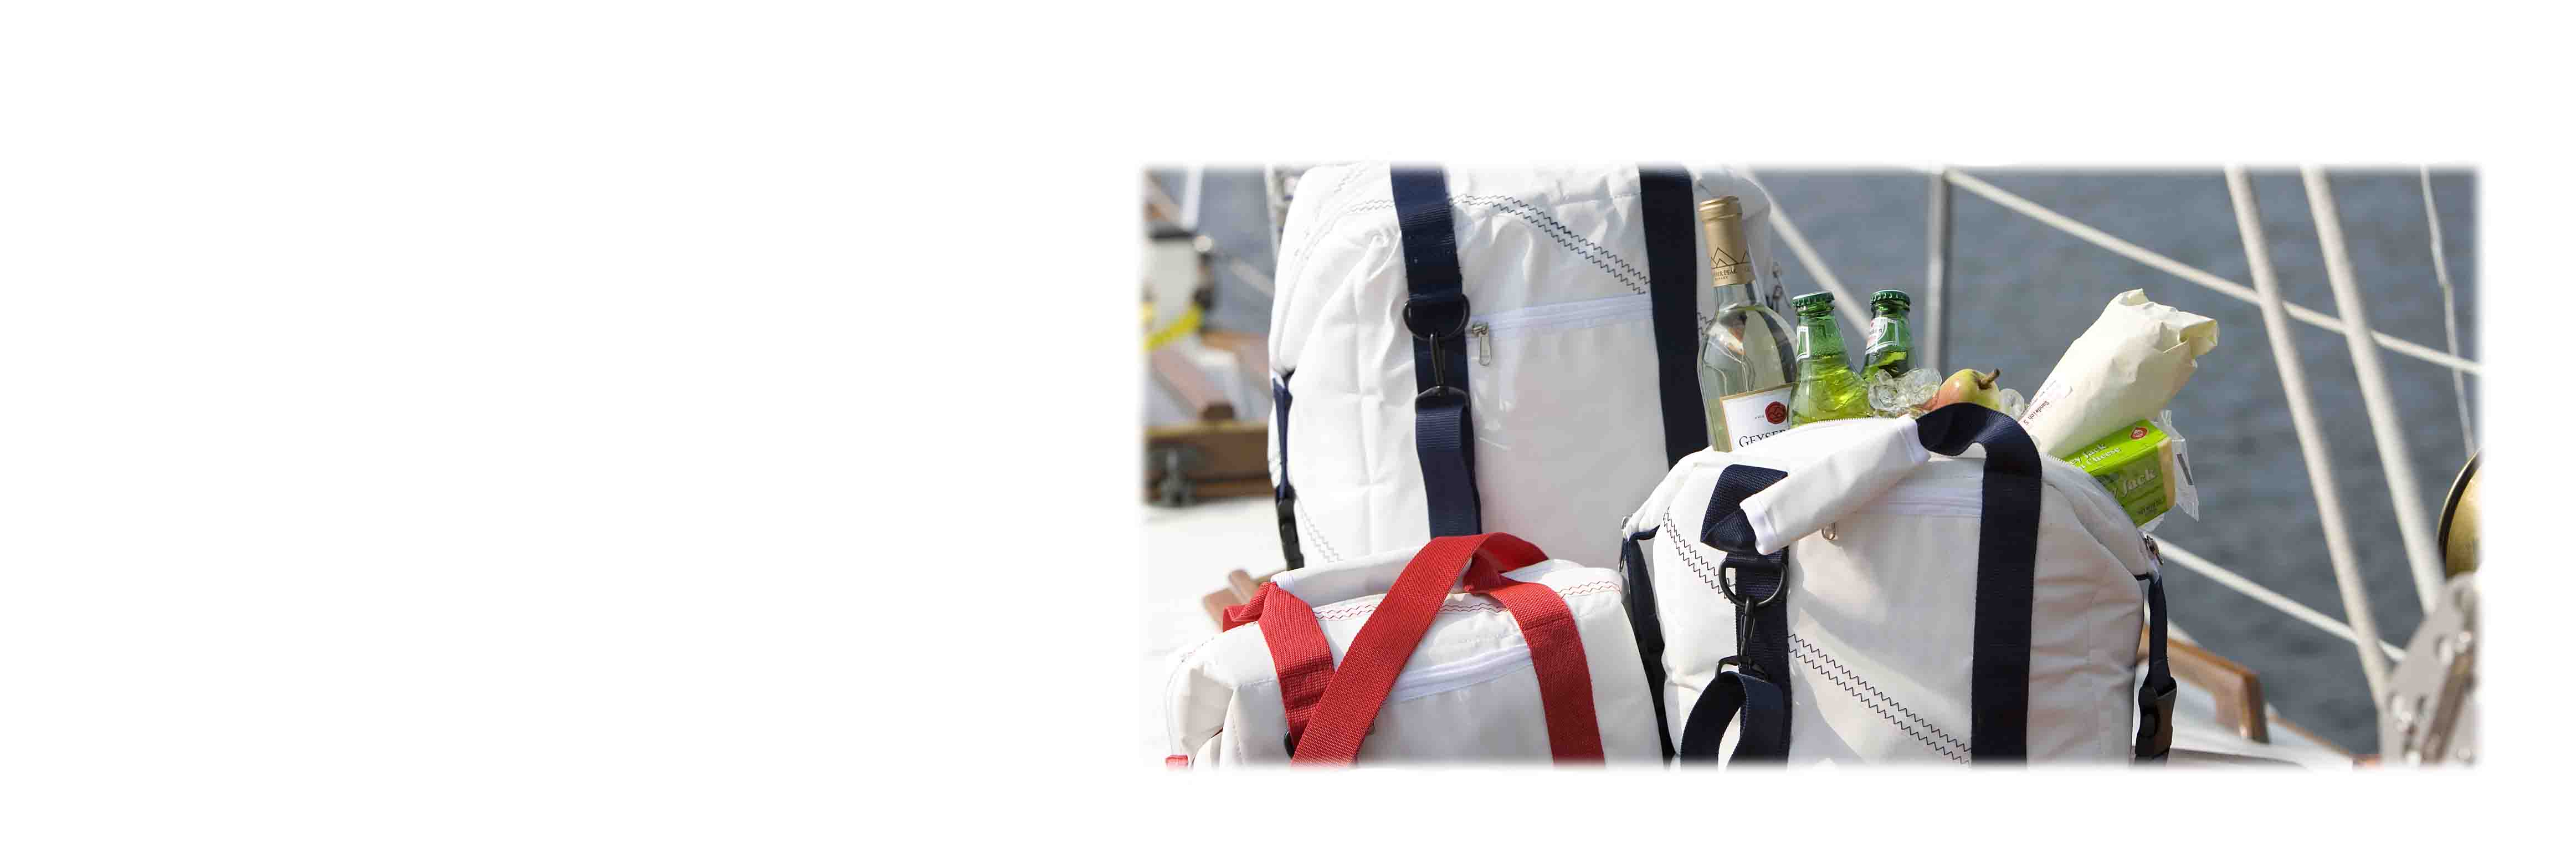 SailorBags genuine sailcloth bags and accessories